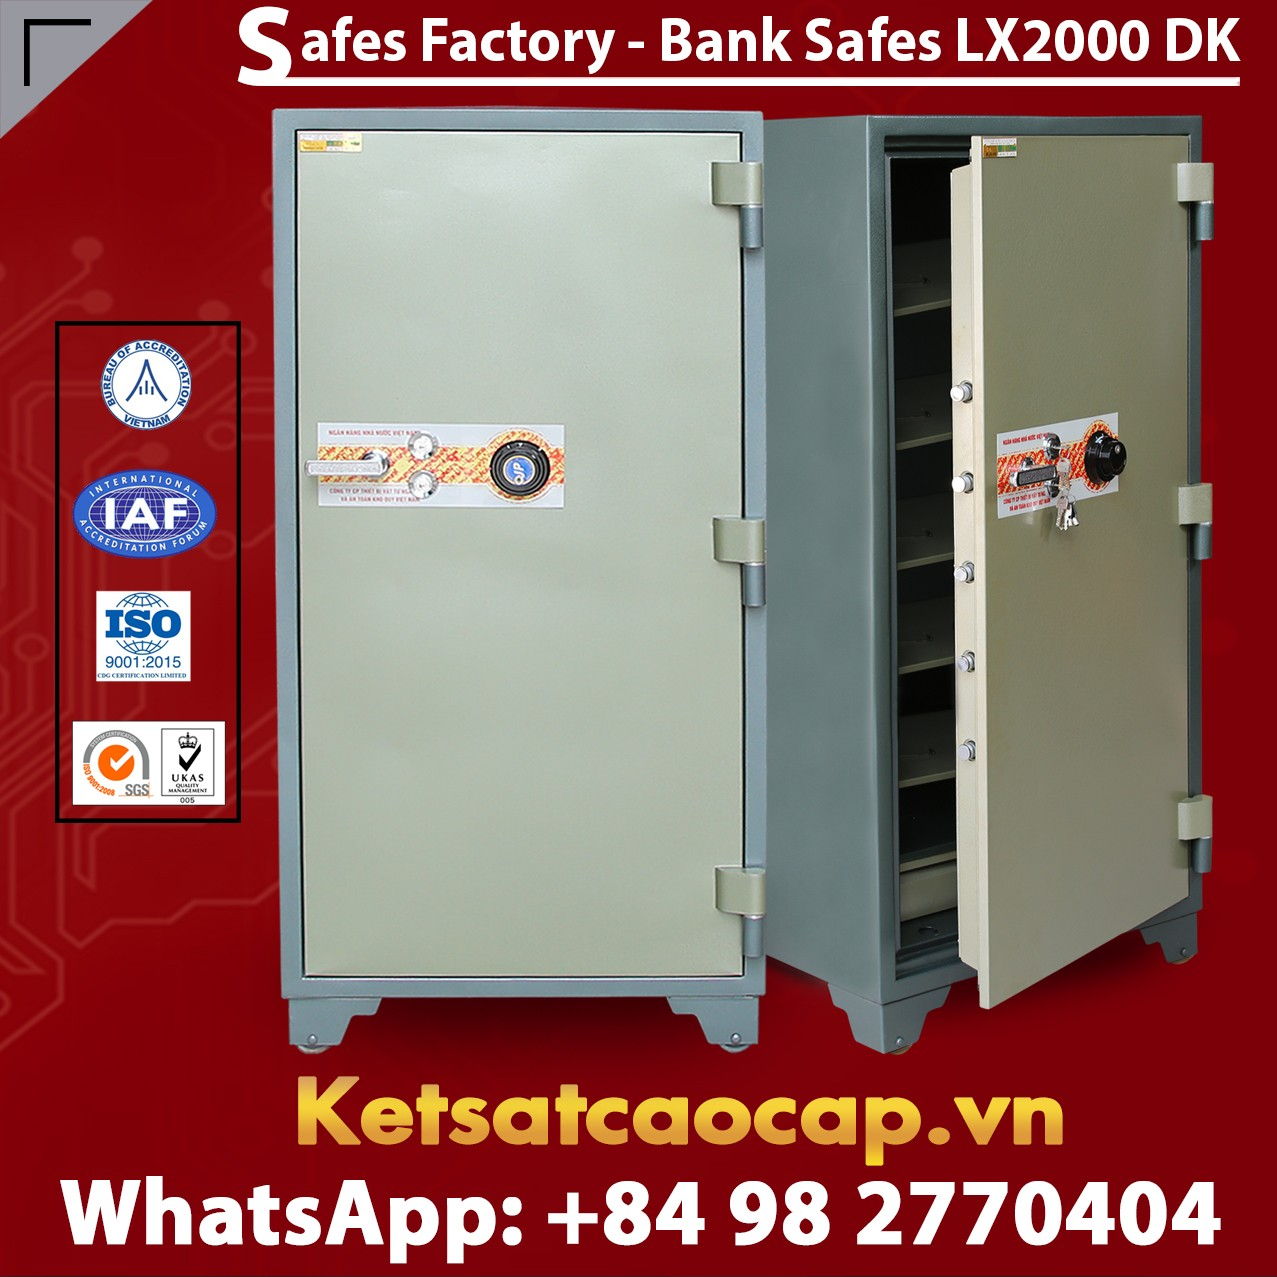 Bank Safes LX2000 DK Customized Design Mechanical Lock System Safe Box